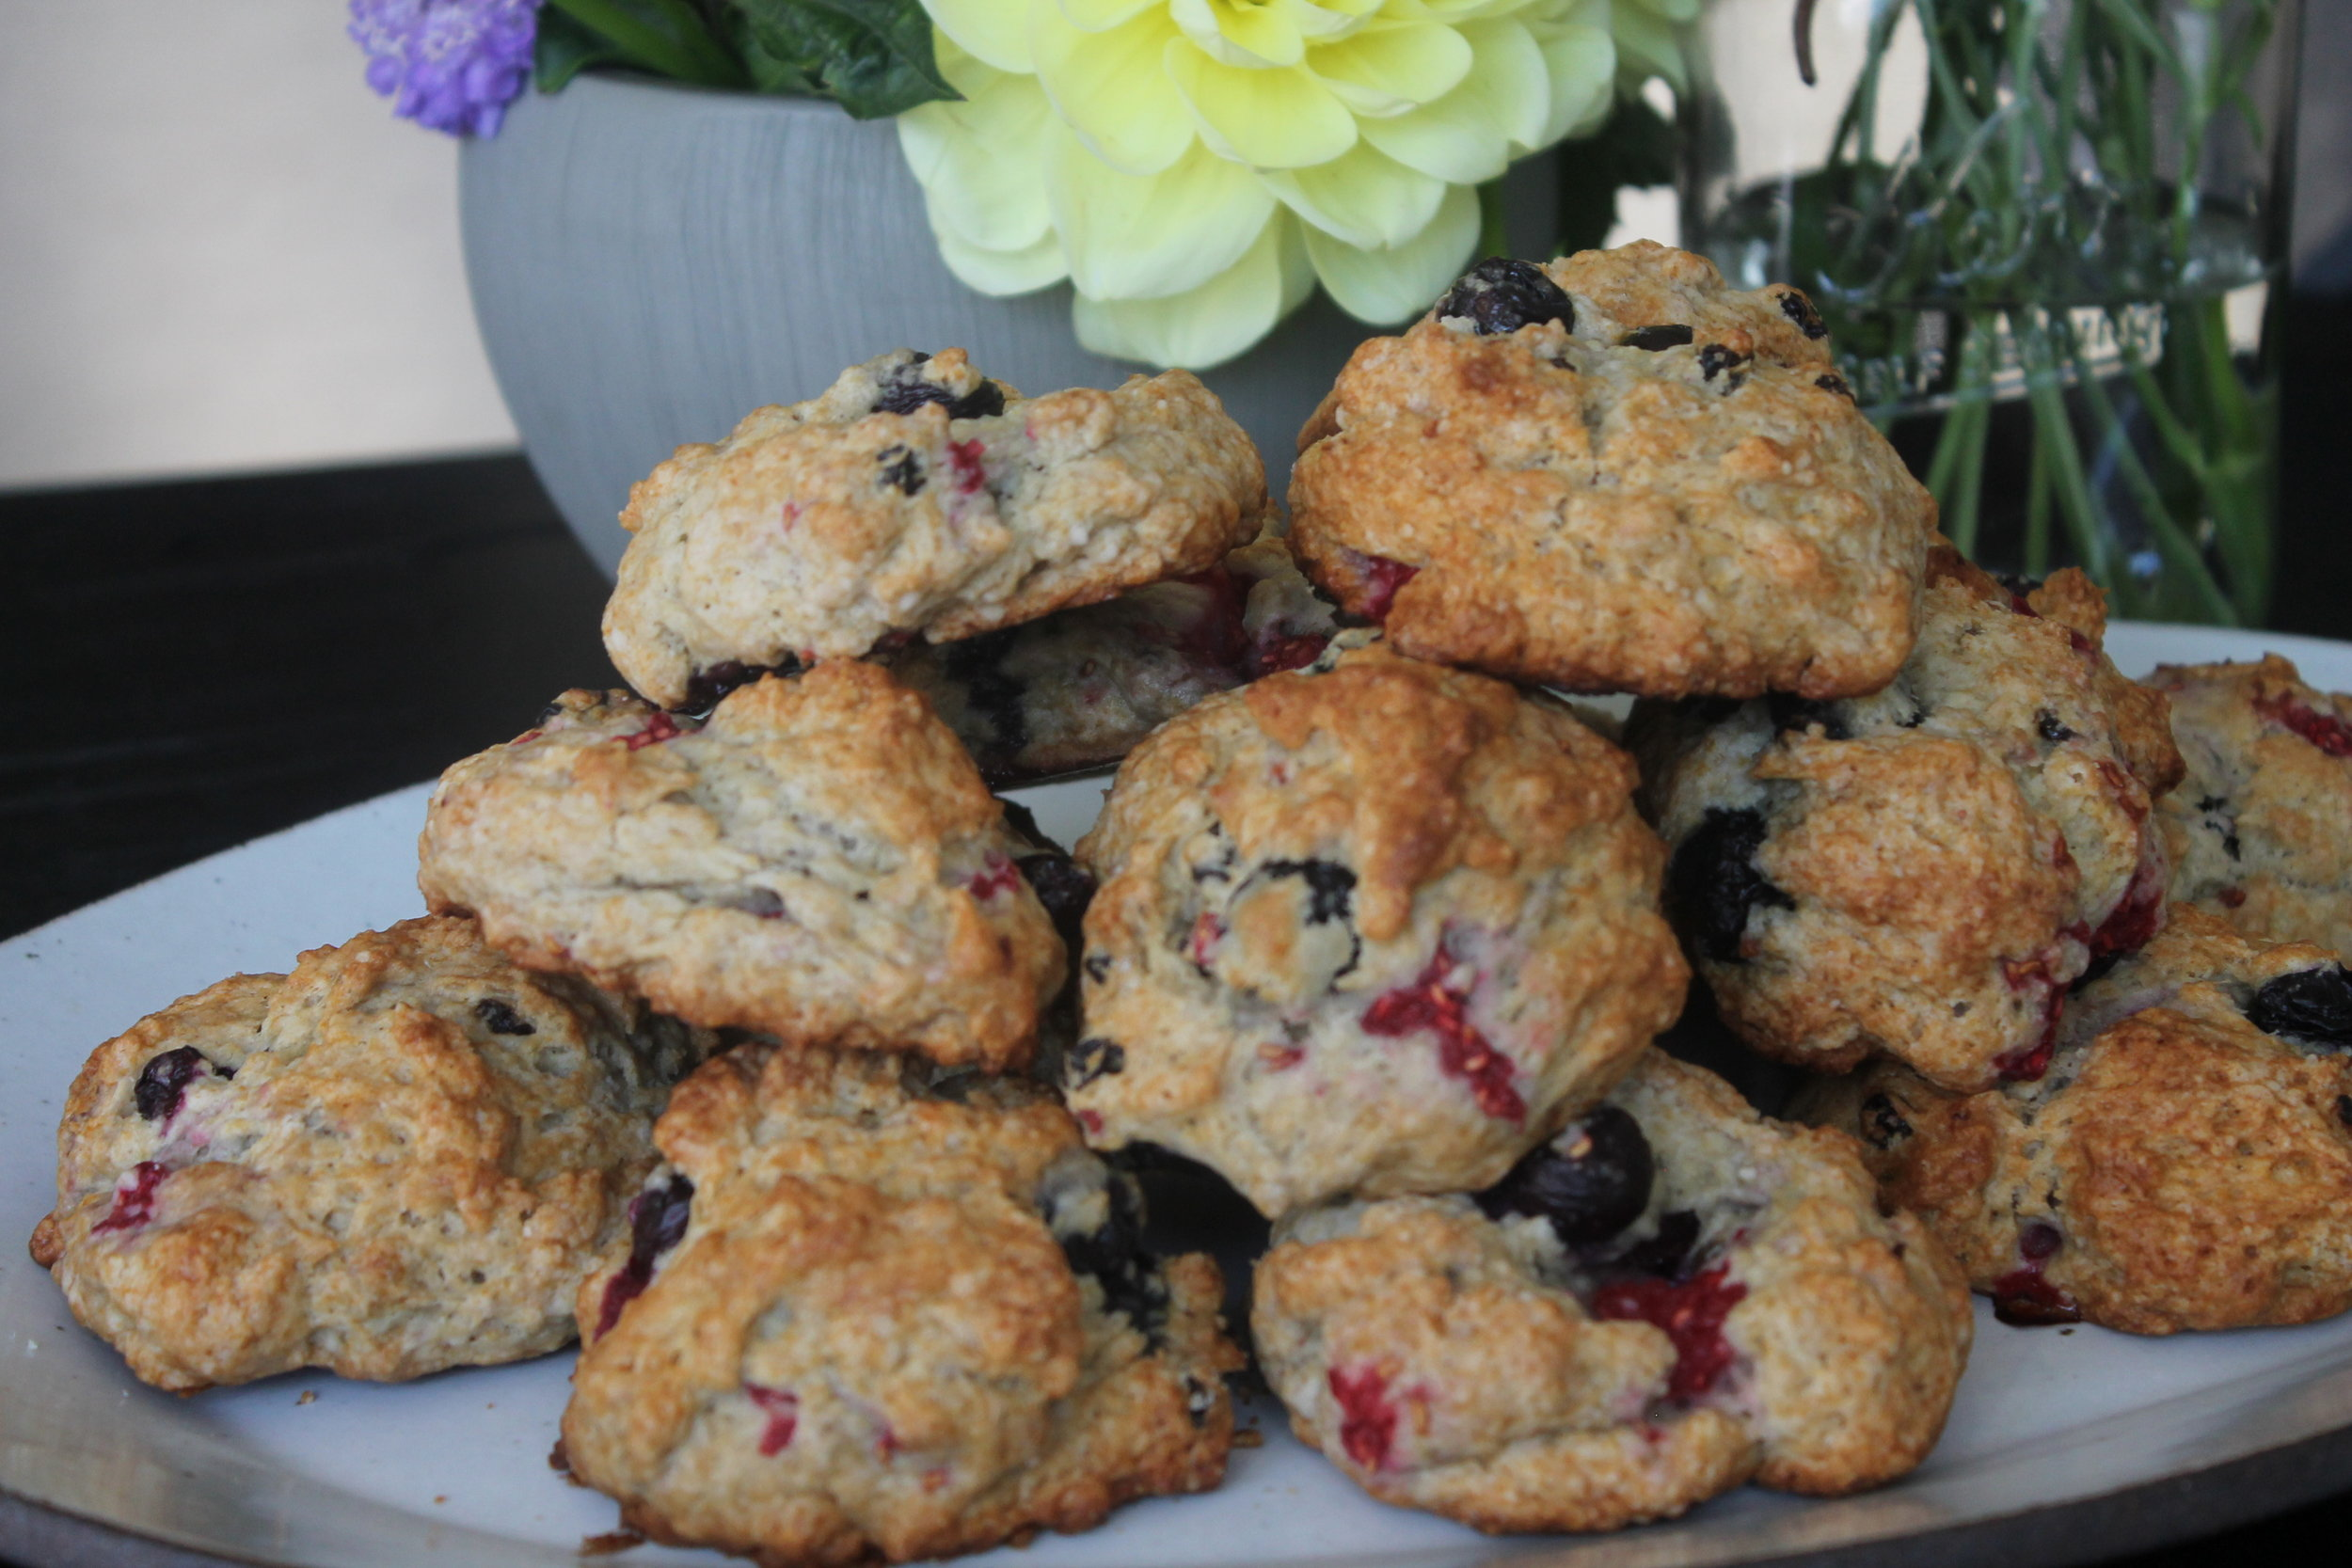 Summer Berry Scones made from recipe in  Once Upon a Tart  cookbook